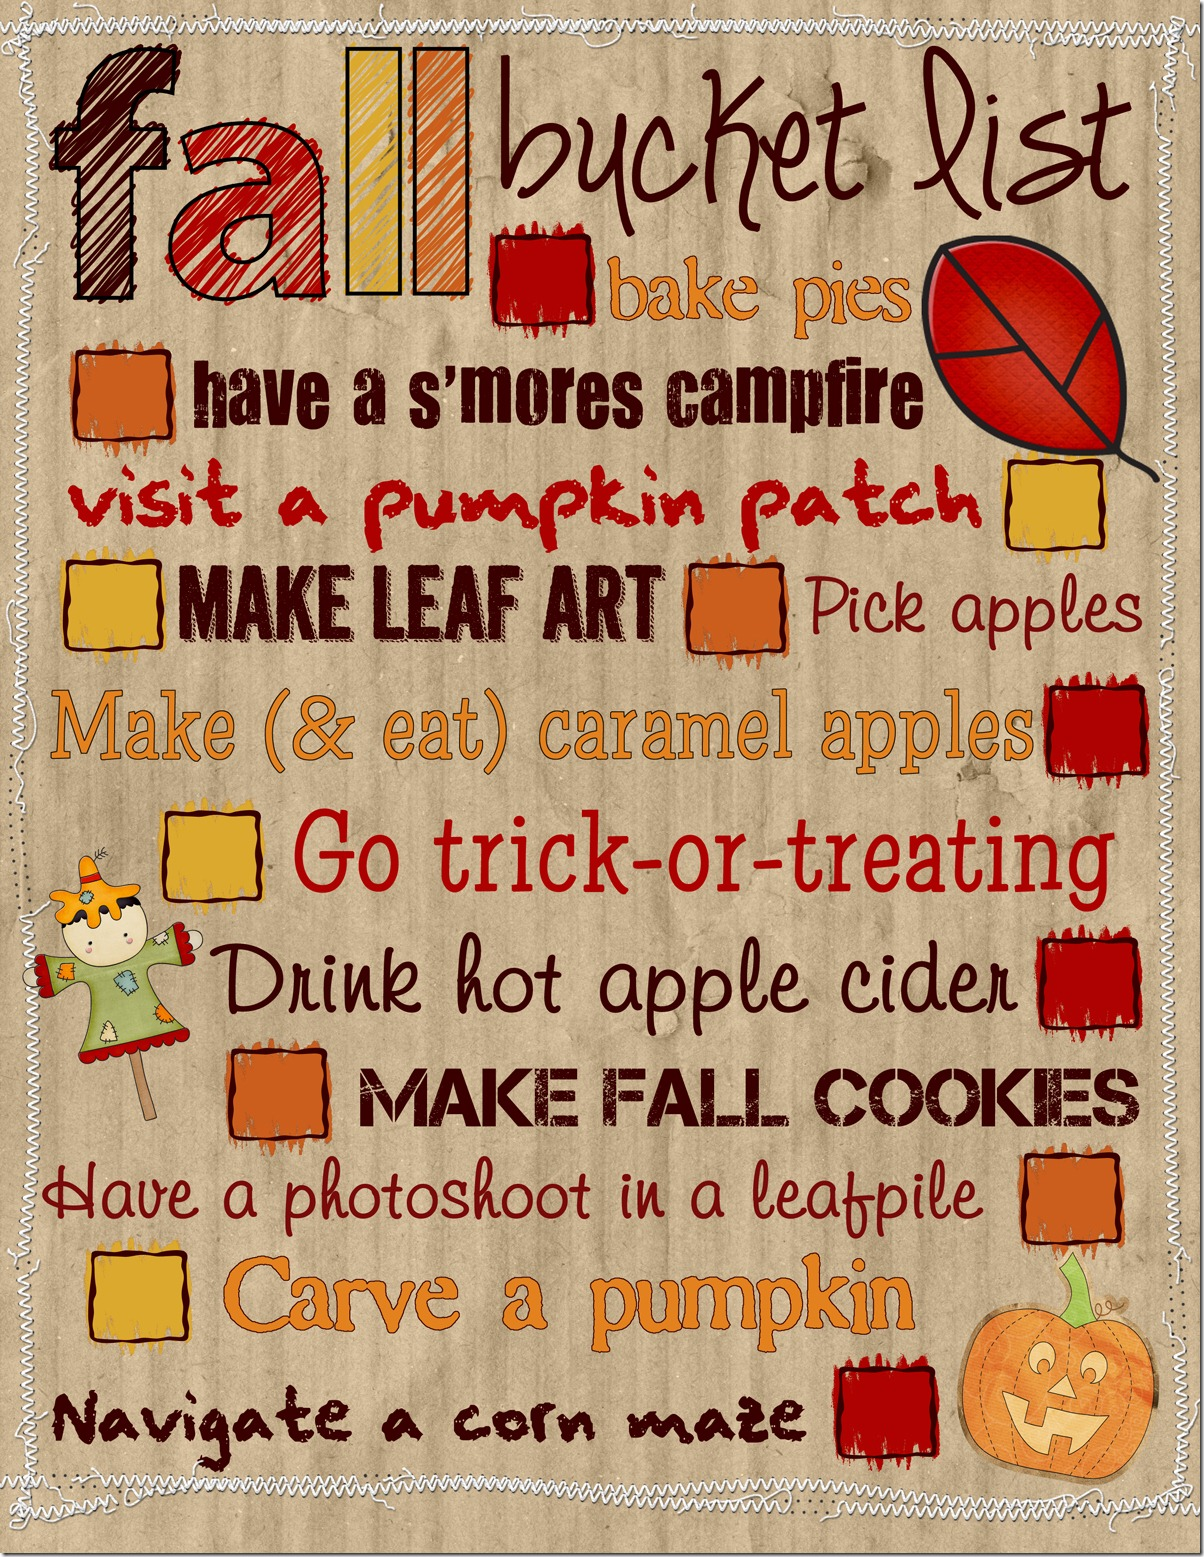 Fall-Bucket-List-Mine-Downl